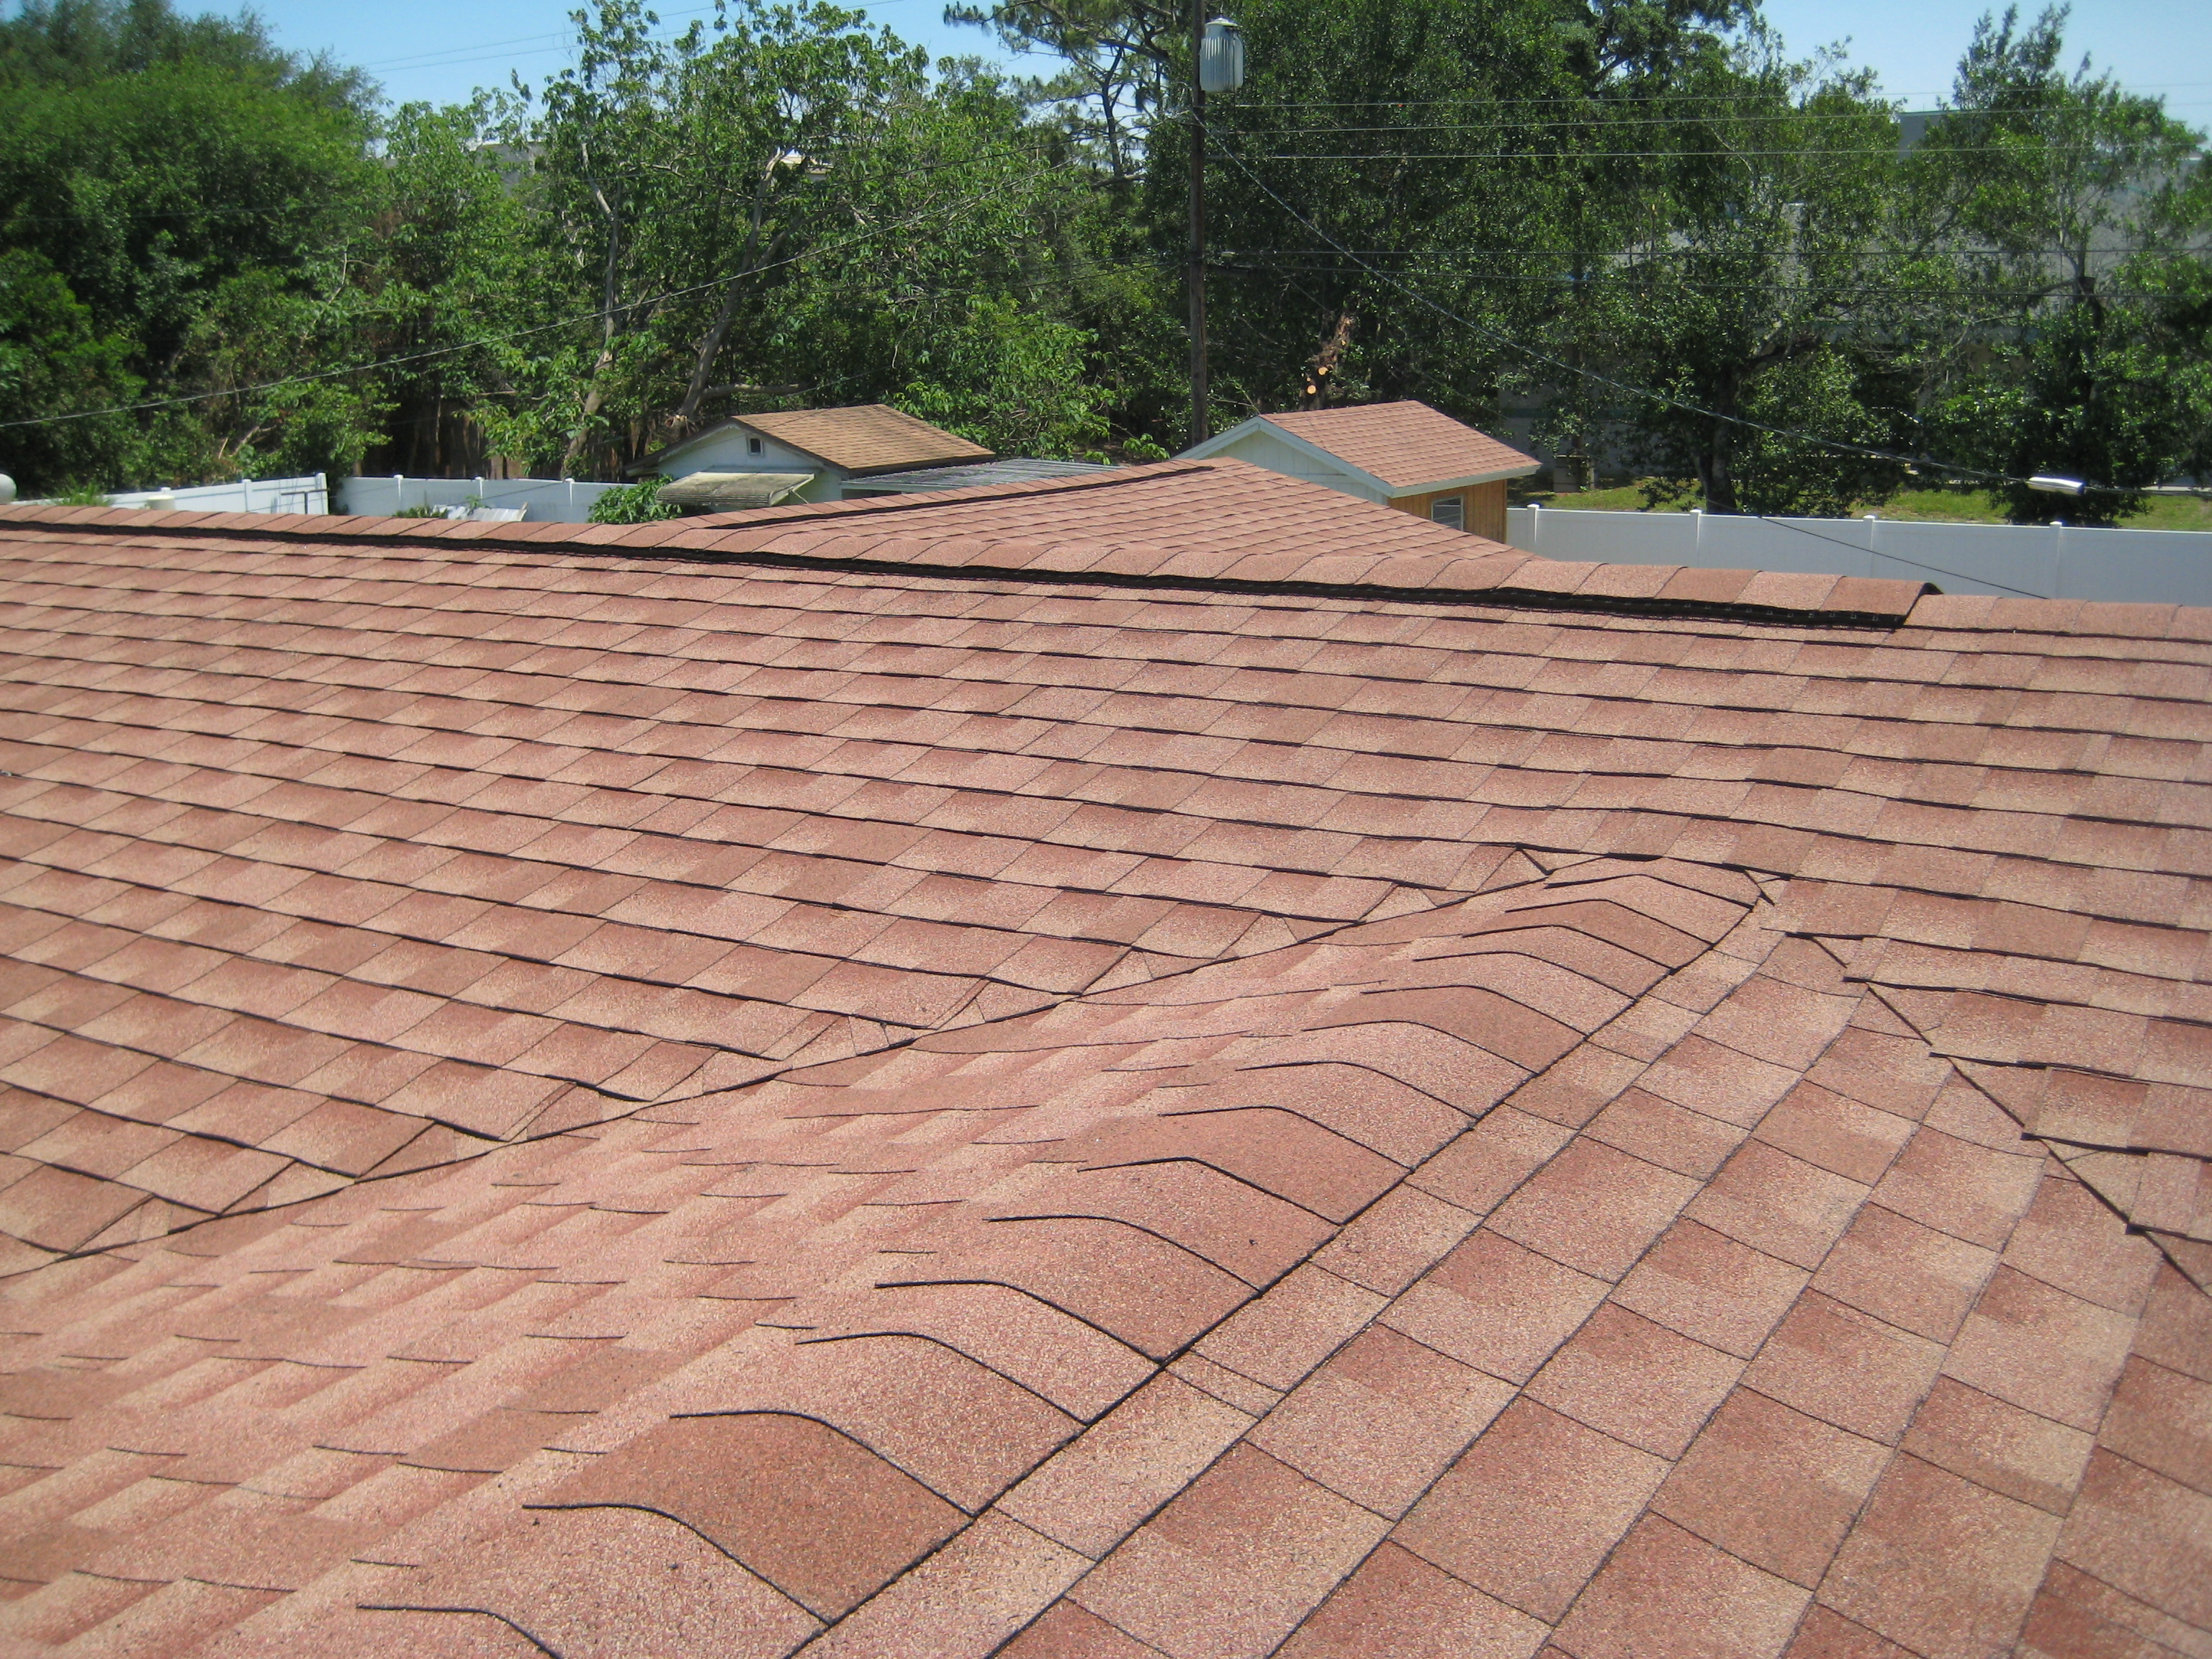 Residential roofing gold seal roofing for Types of residential roofs